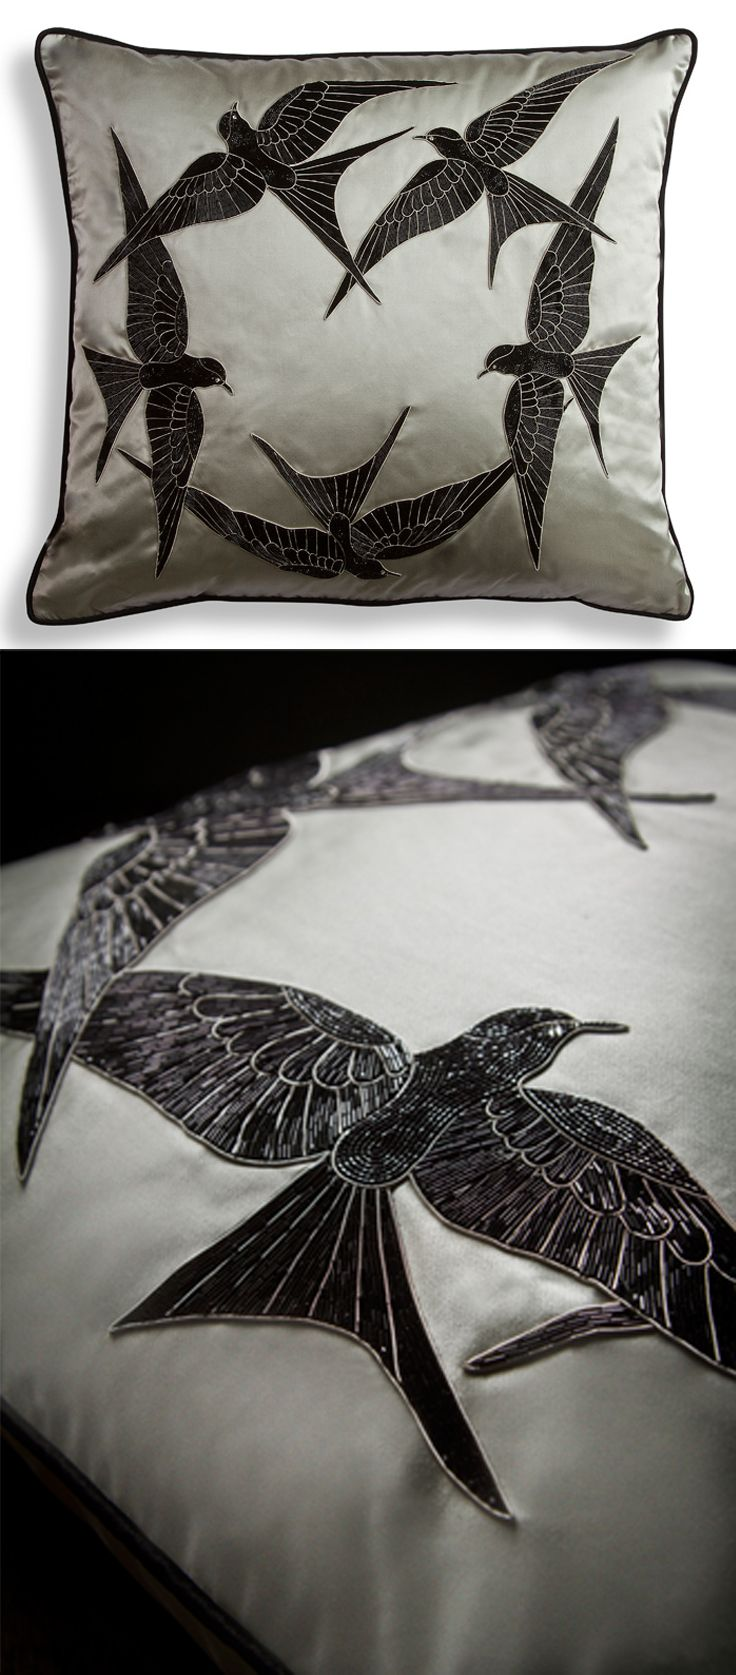 Elvira cushion. With extraordinarily intricate workmanship in bead-work, the design creates a beautiful circle of birds.